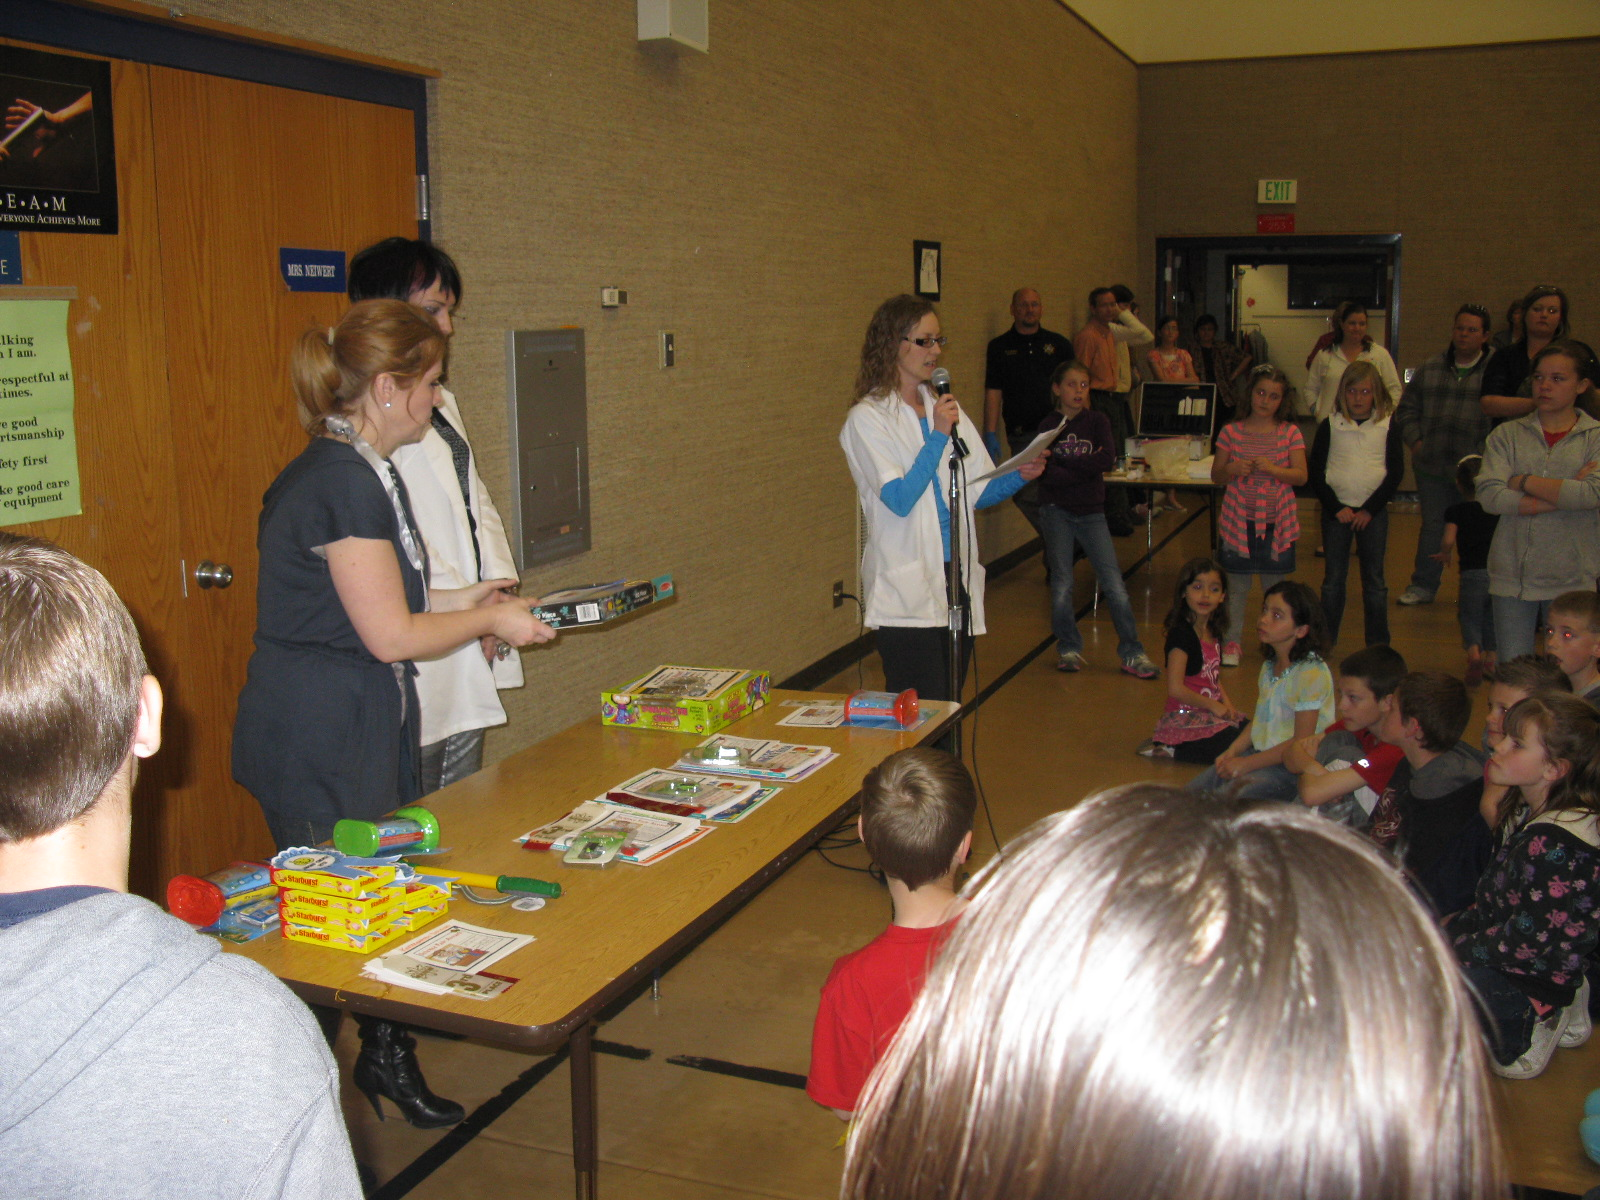 Grand Prize Winners Learned About Circuitry Doing Squishy Circuits